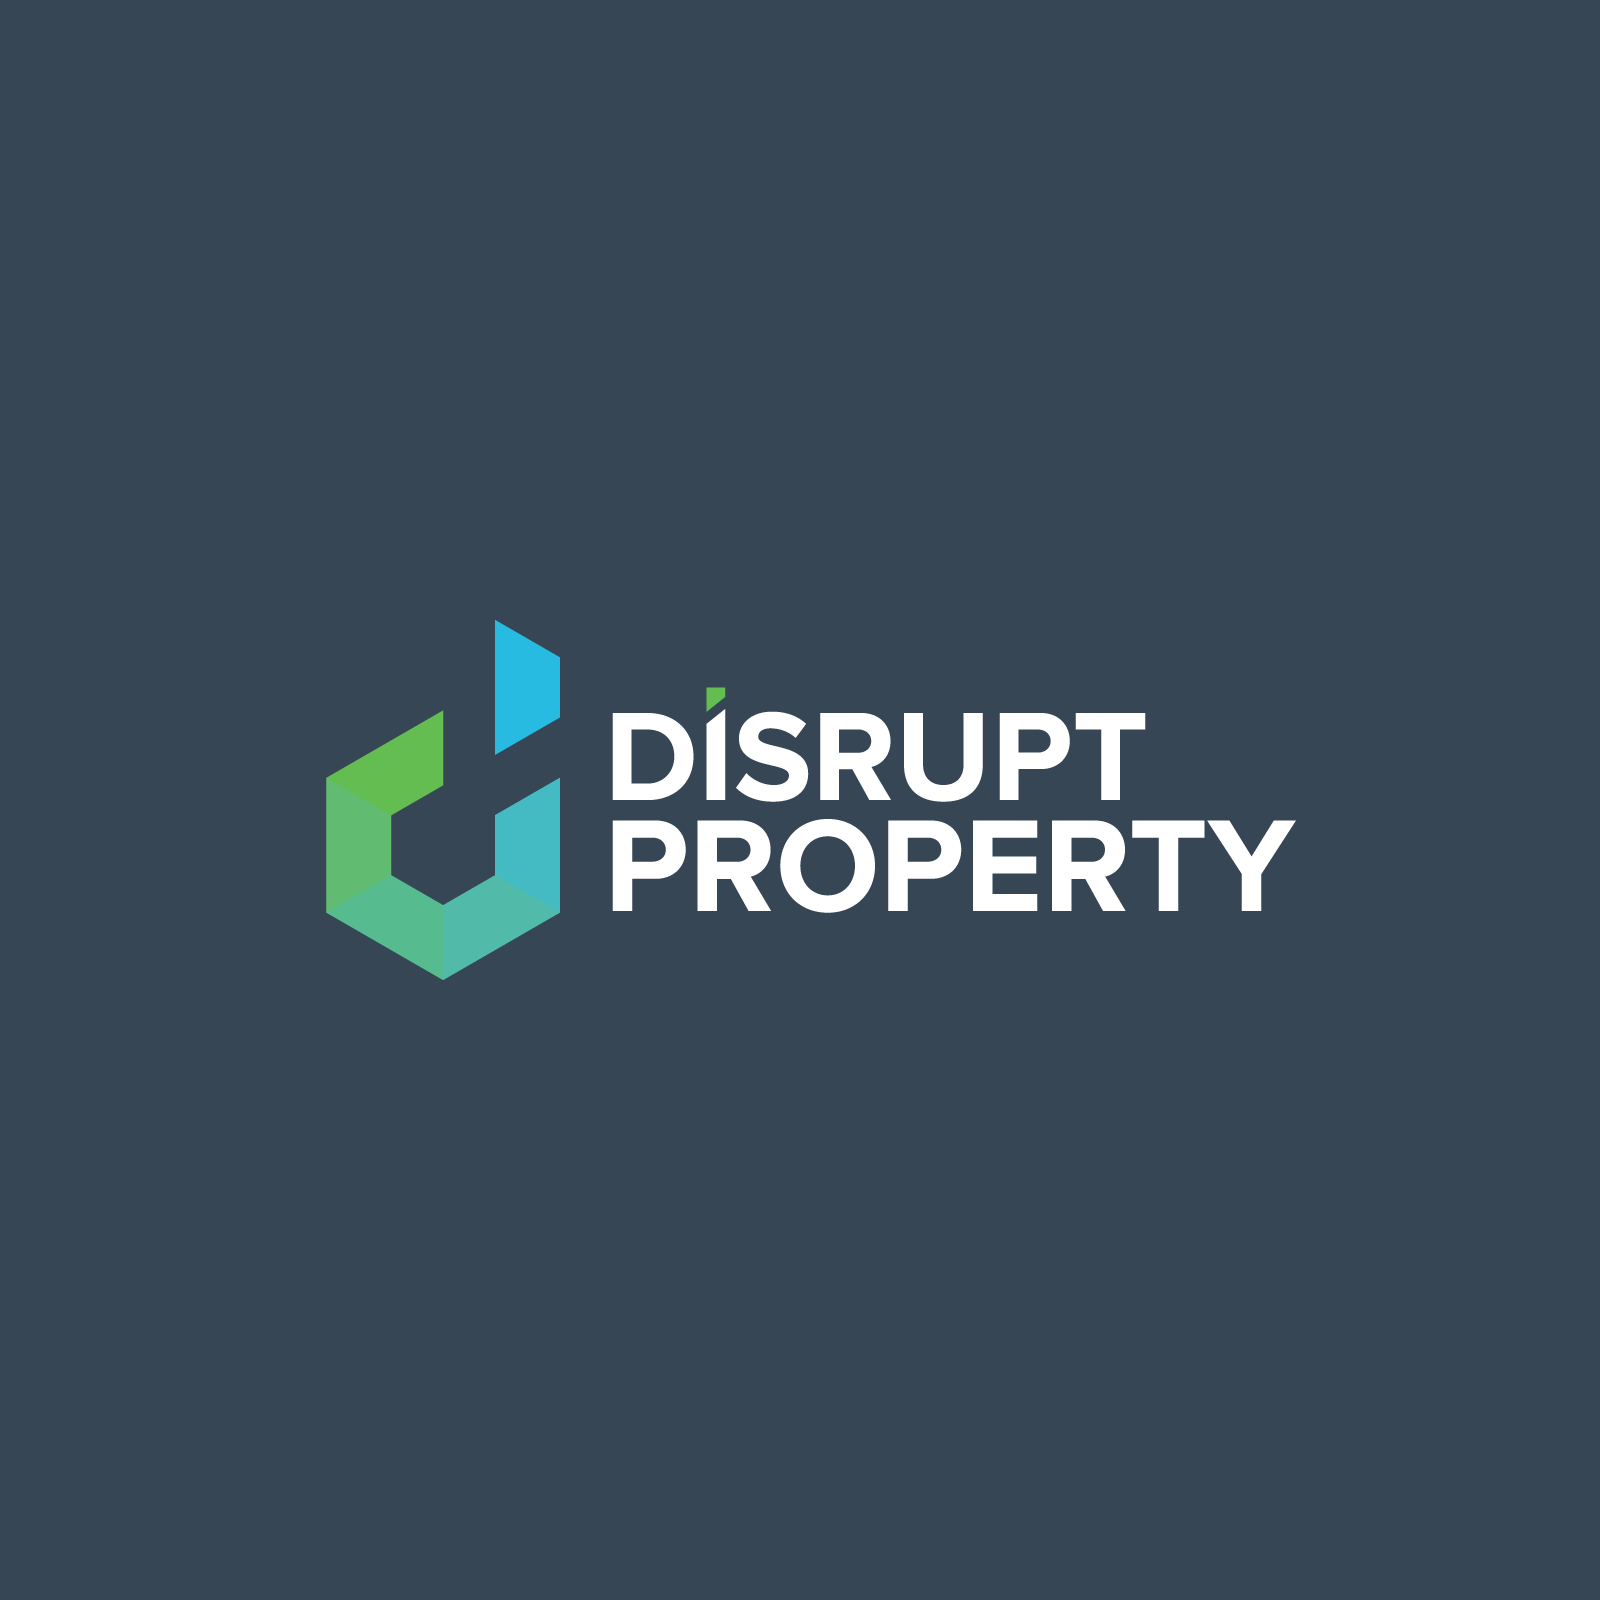 Disrupt Property